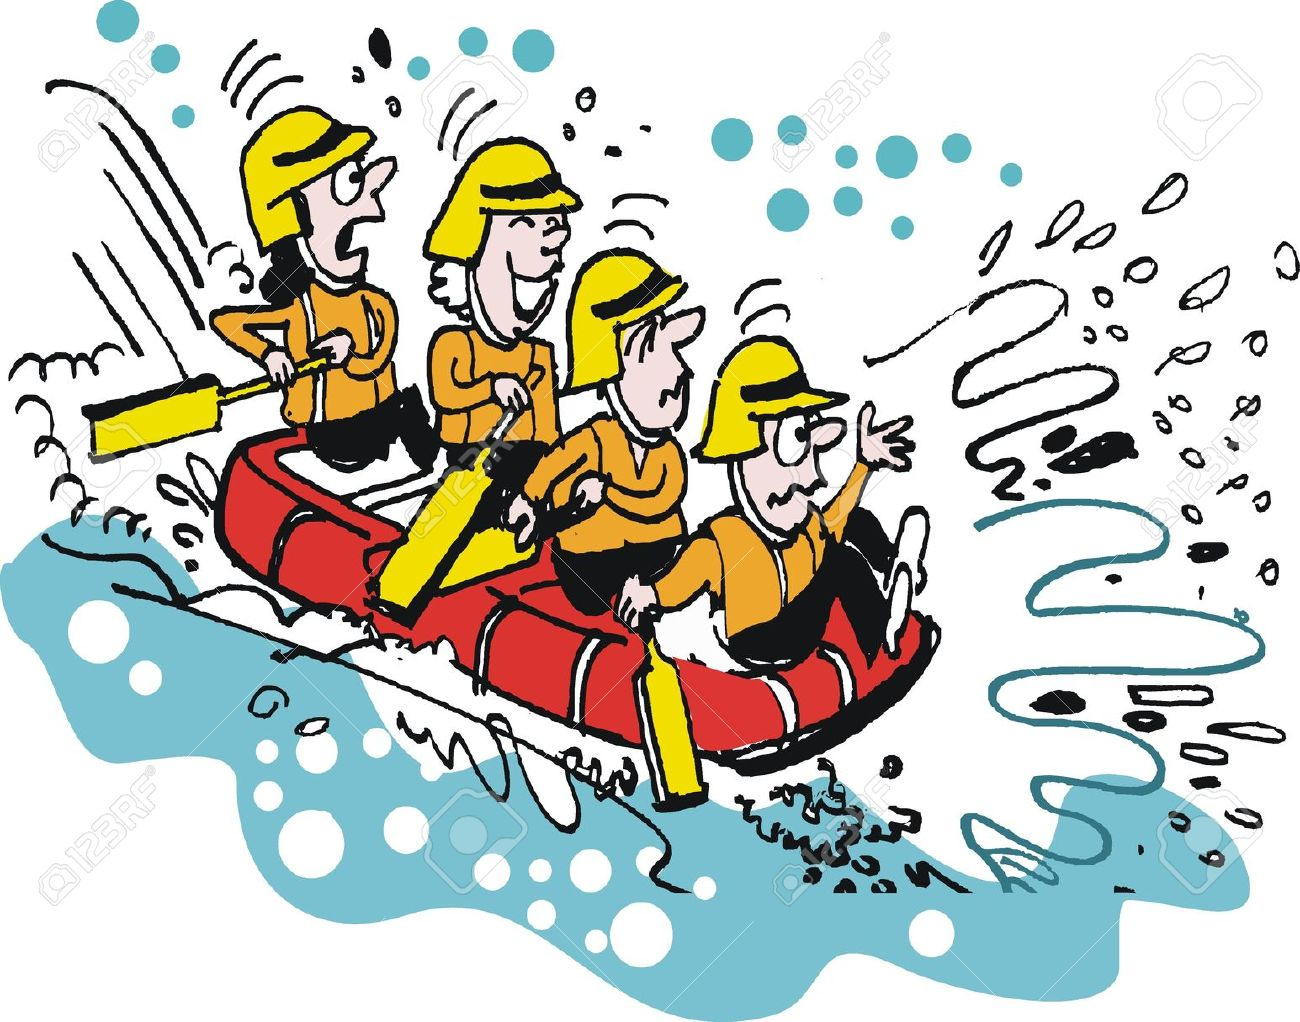 Rapids clipart #11, Download drawings